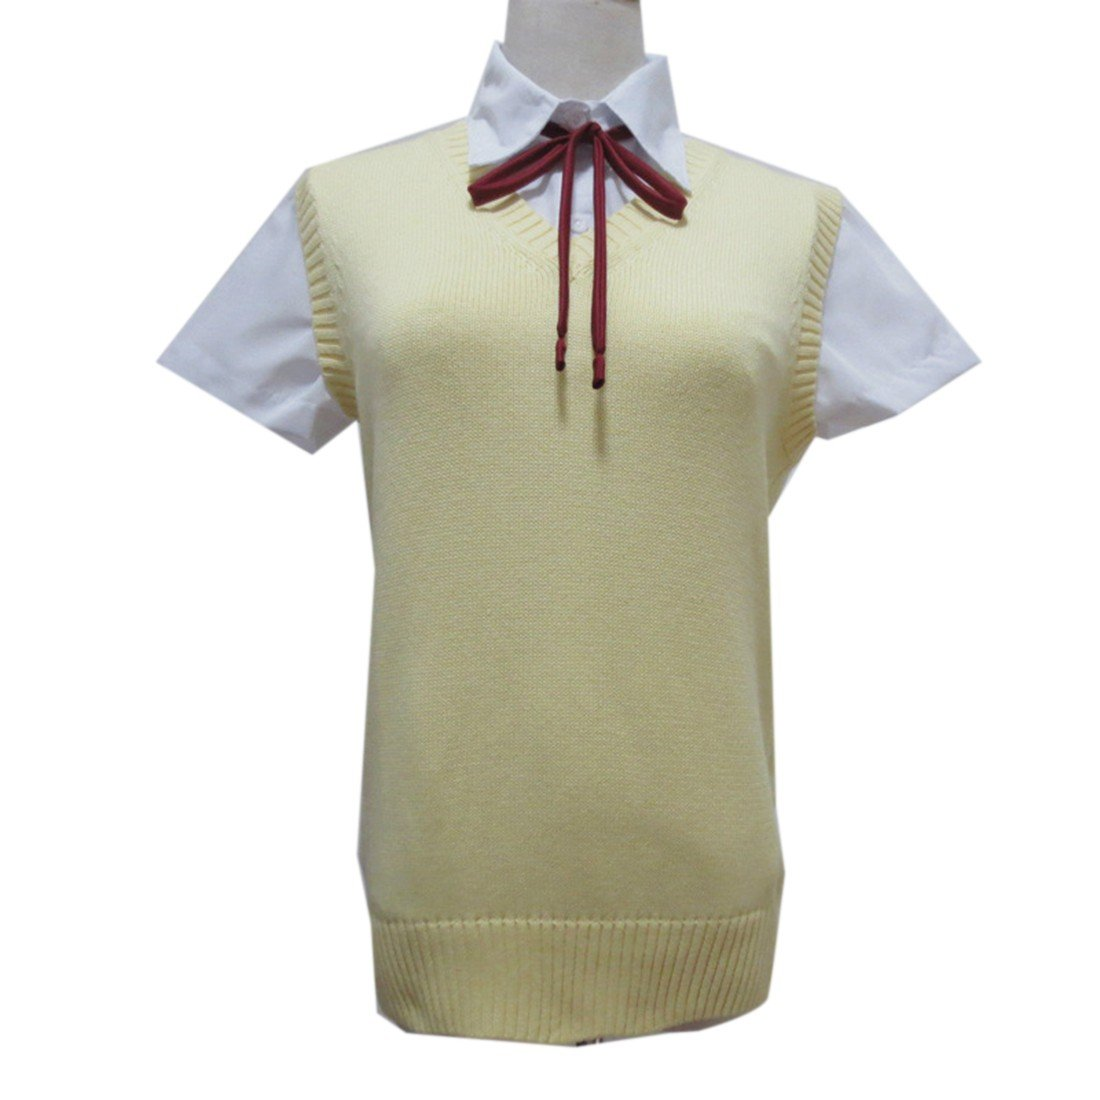 Women Sleeveless V Neck Cotton School Girls JK Uniforms Vests Knitting Tops